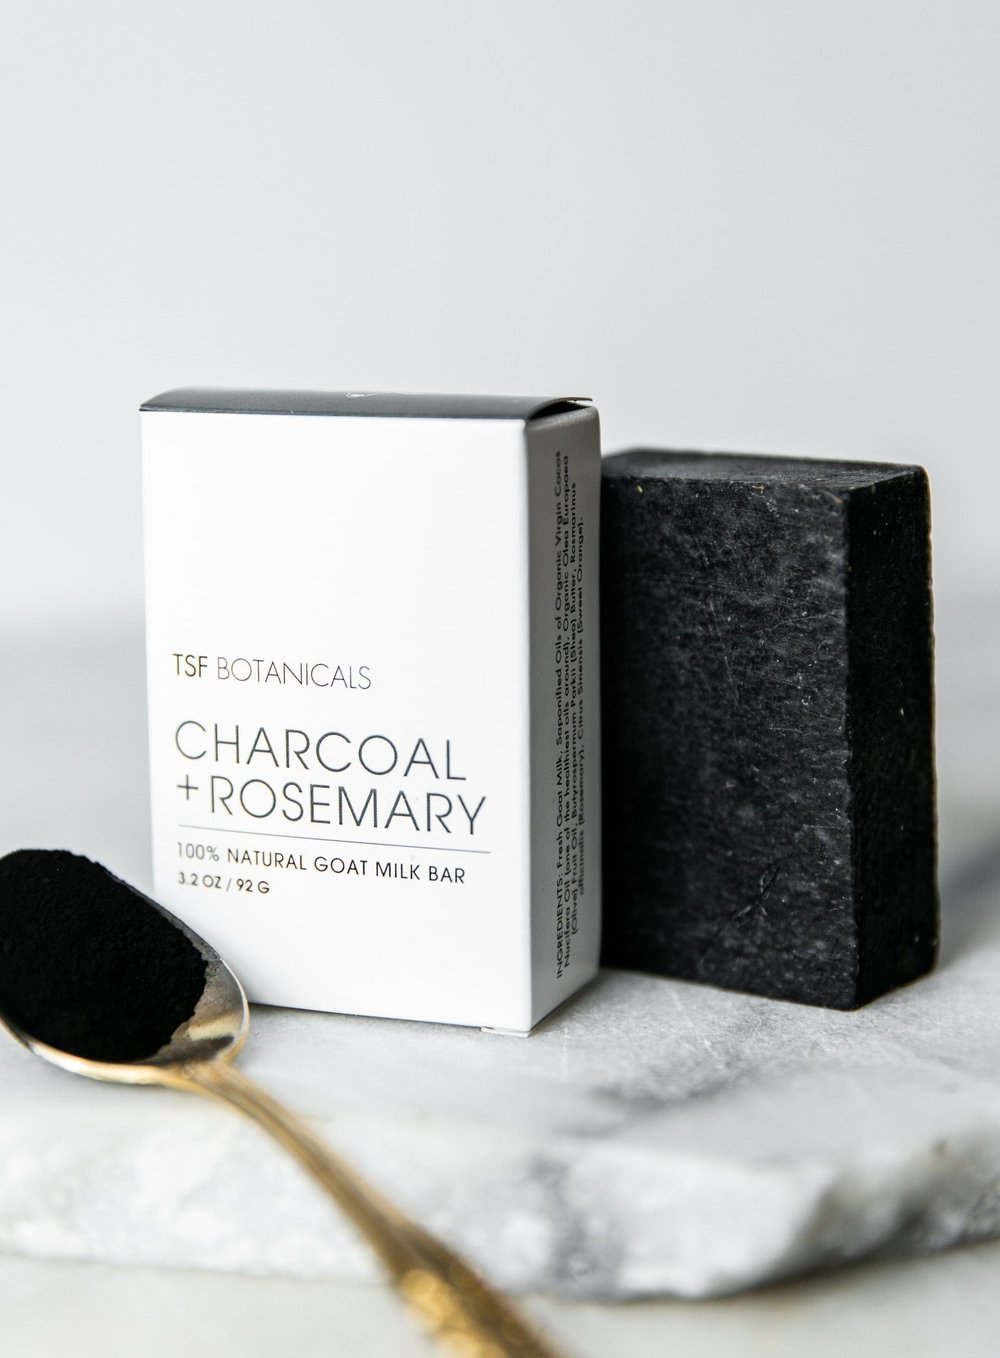 Charcoal & Rosemary Goat Milk Soap Bar: - My friend Lylah is a fellow goat lady, and has developed a line of beauty products using goat milk & botanicals from her farm. Her goat milk soap is truly amazing and is my go-to cleansing bar. I love that it is inexpensive and does an amazing job cleansing my skin after a day spent out in the dirt and dust. This is a staple product for all skin types that cleanses without drying (thanks to the goats milk).